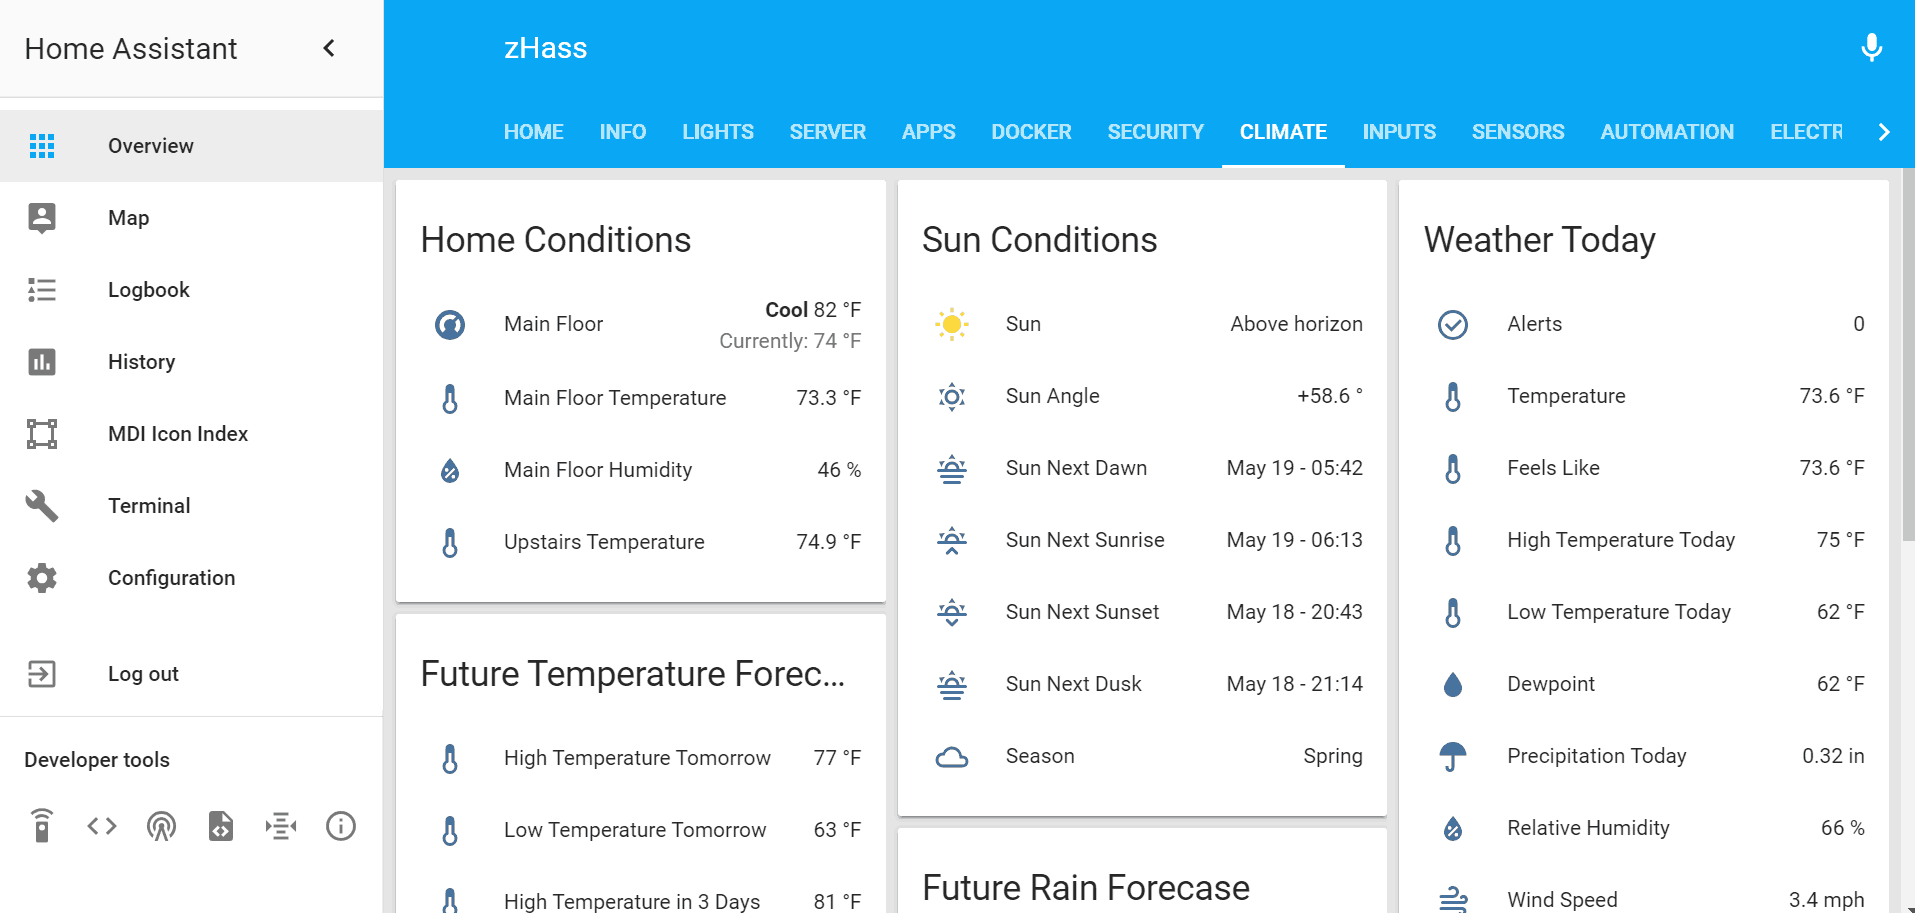 How to add an animated Weather Radar on Home Assistant?